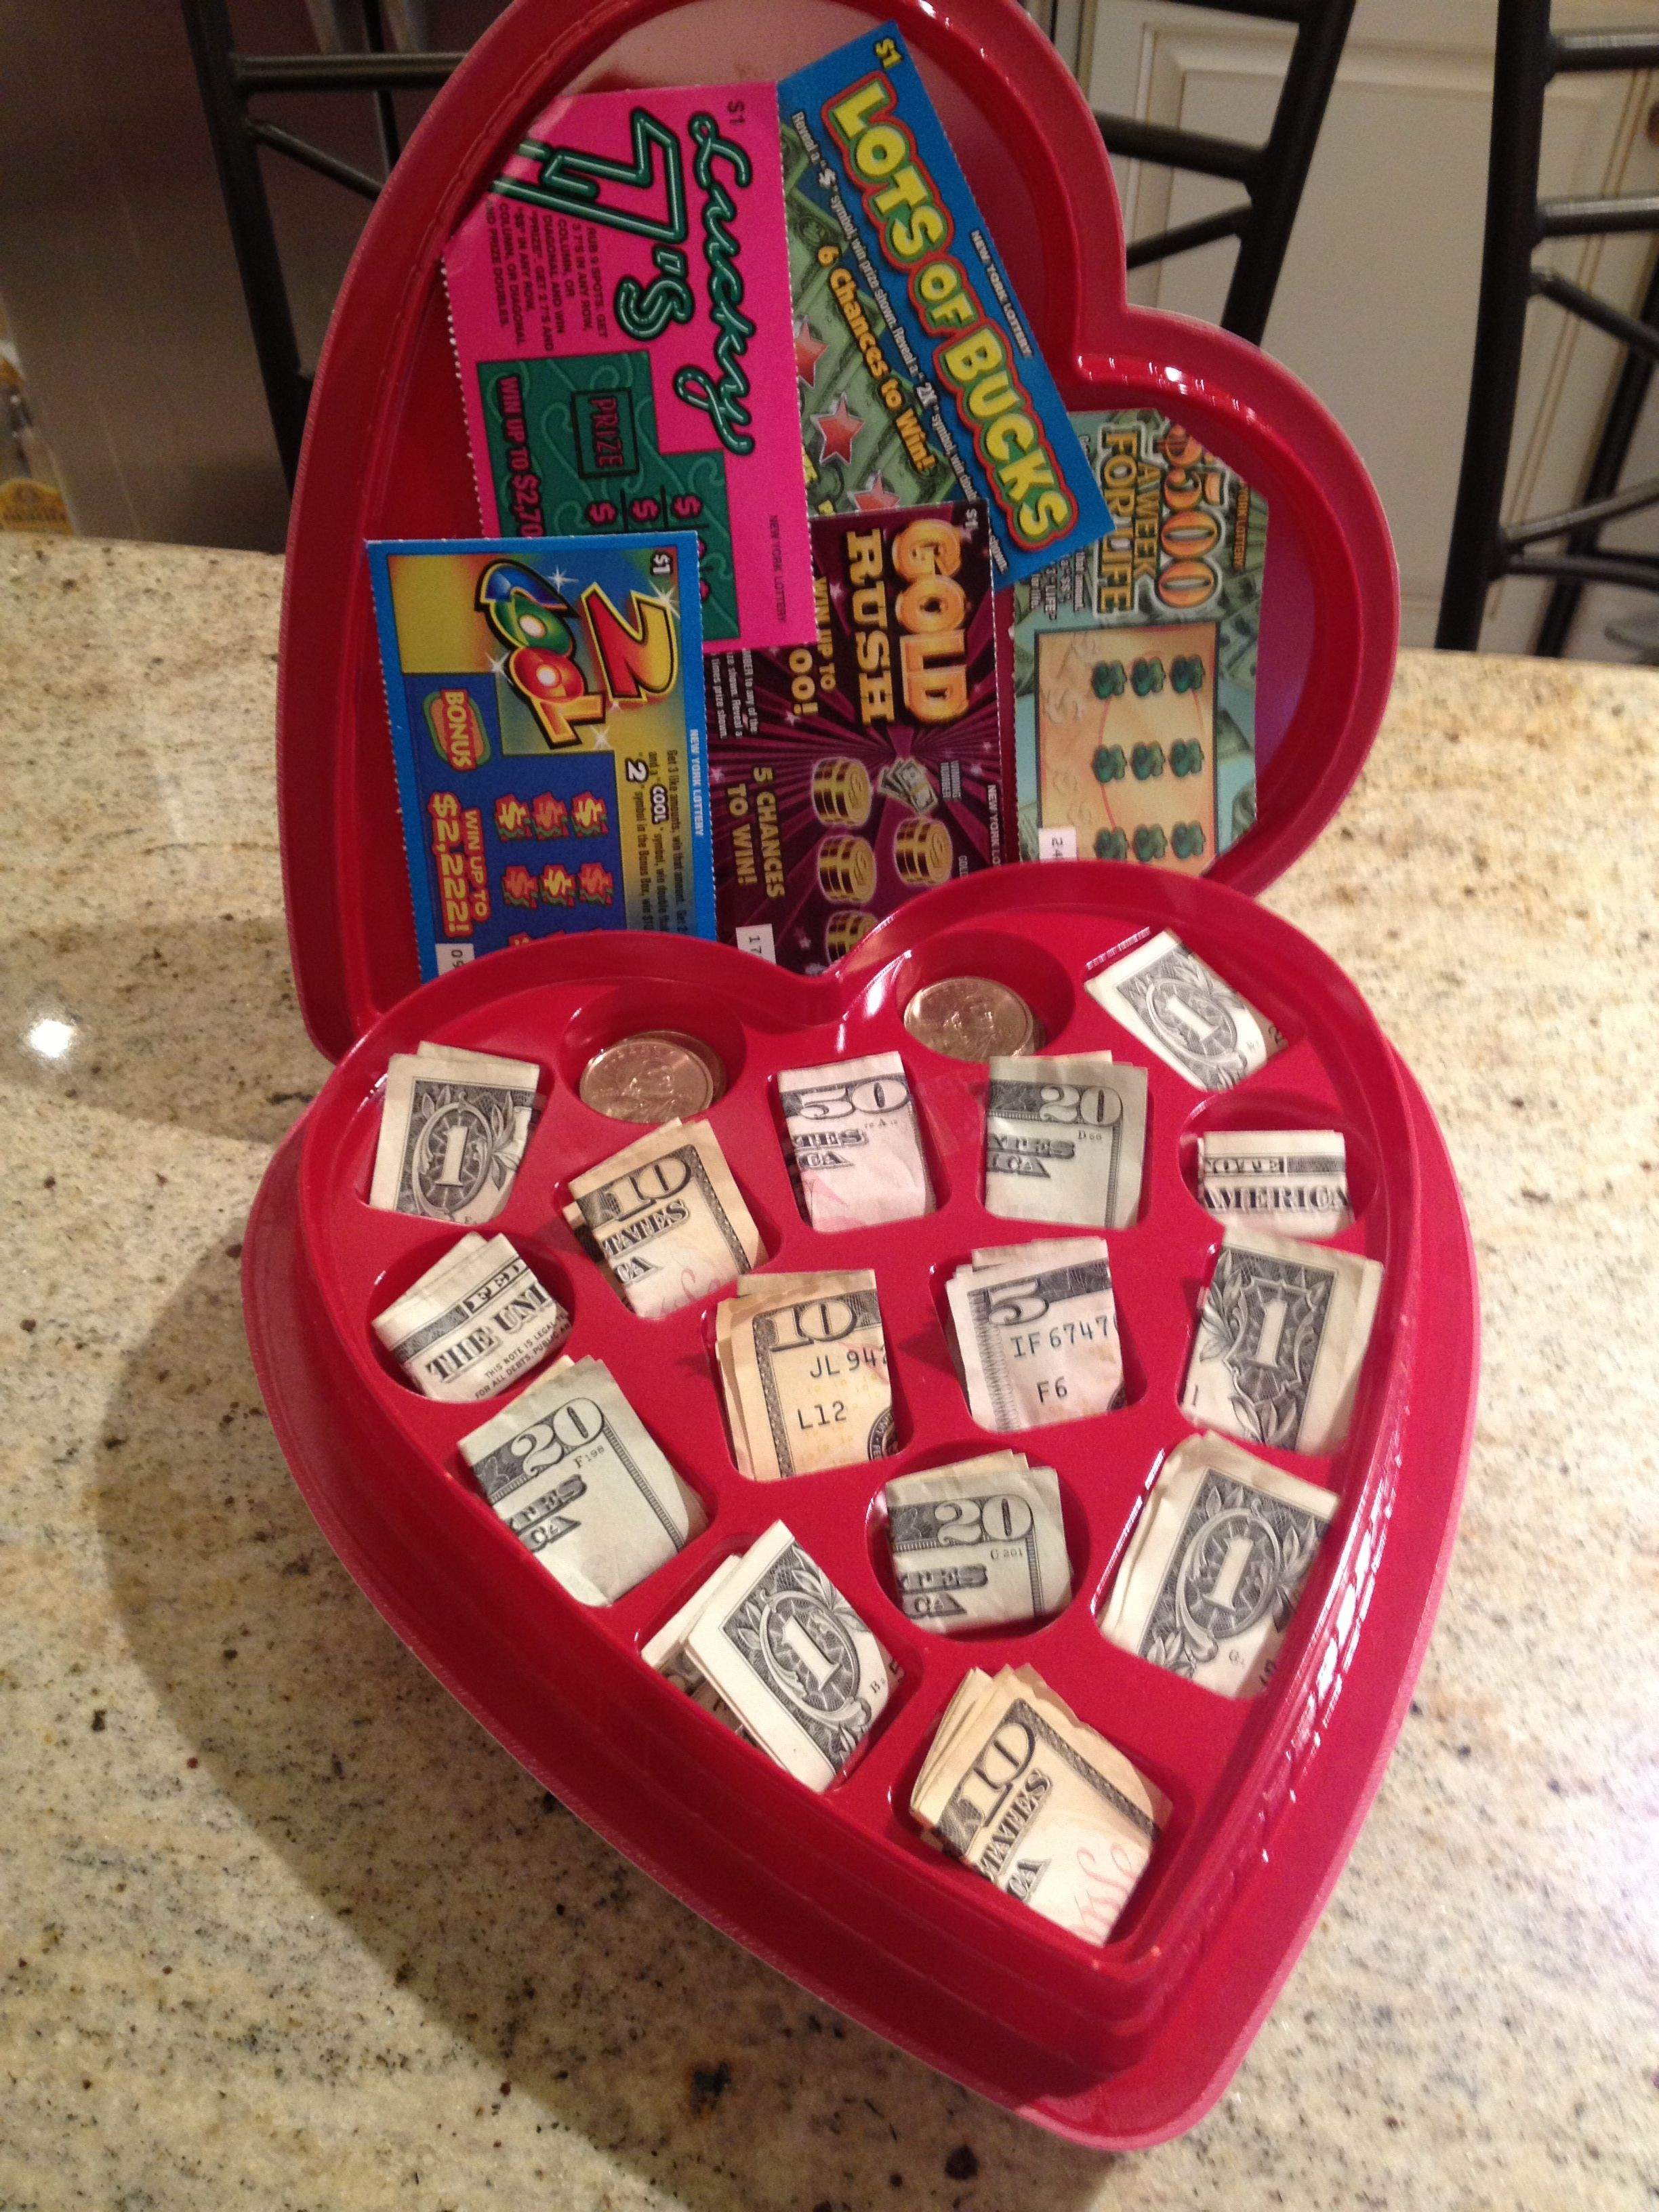 Valentines day gift idea - Do you think this is better than ...